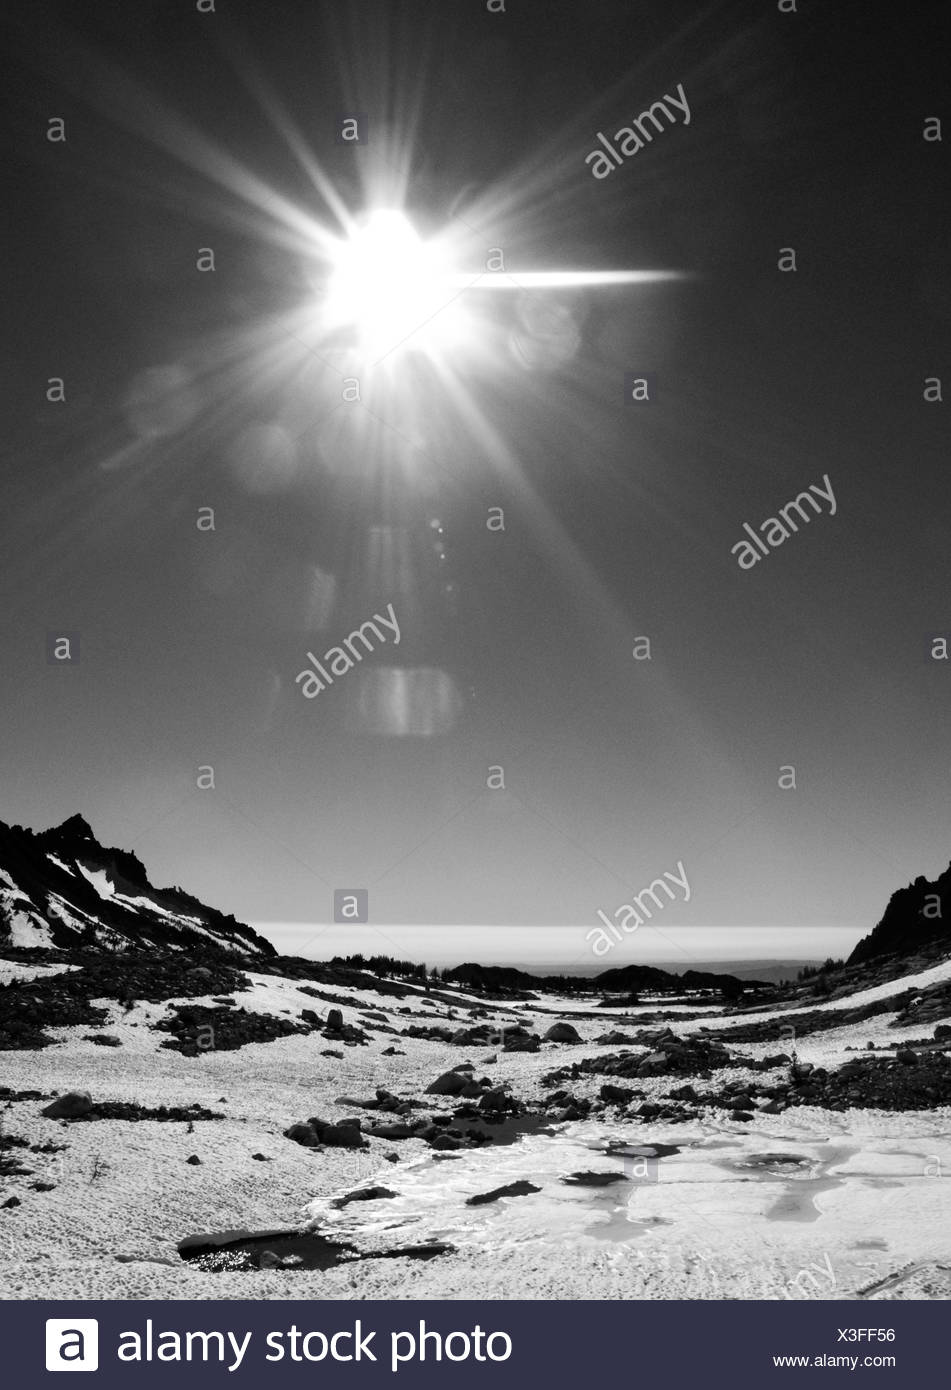 Black and white image of the bright sun over a snowy landscape - Stock Image